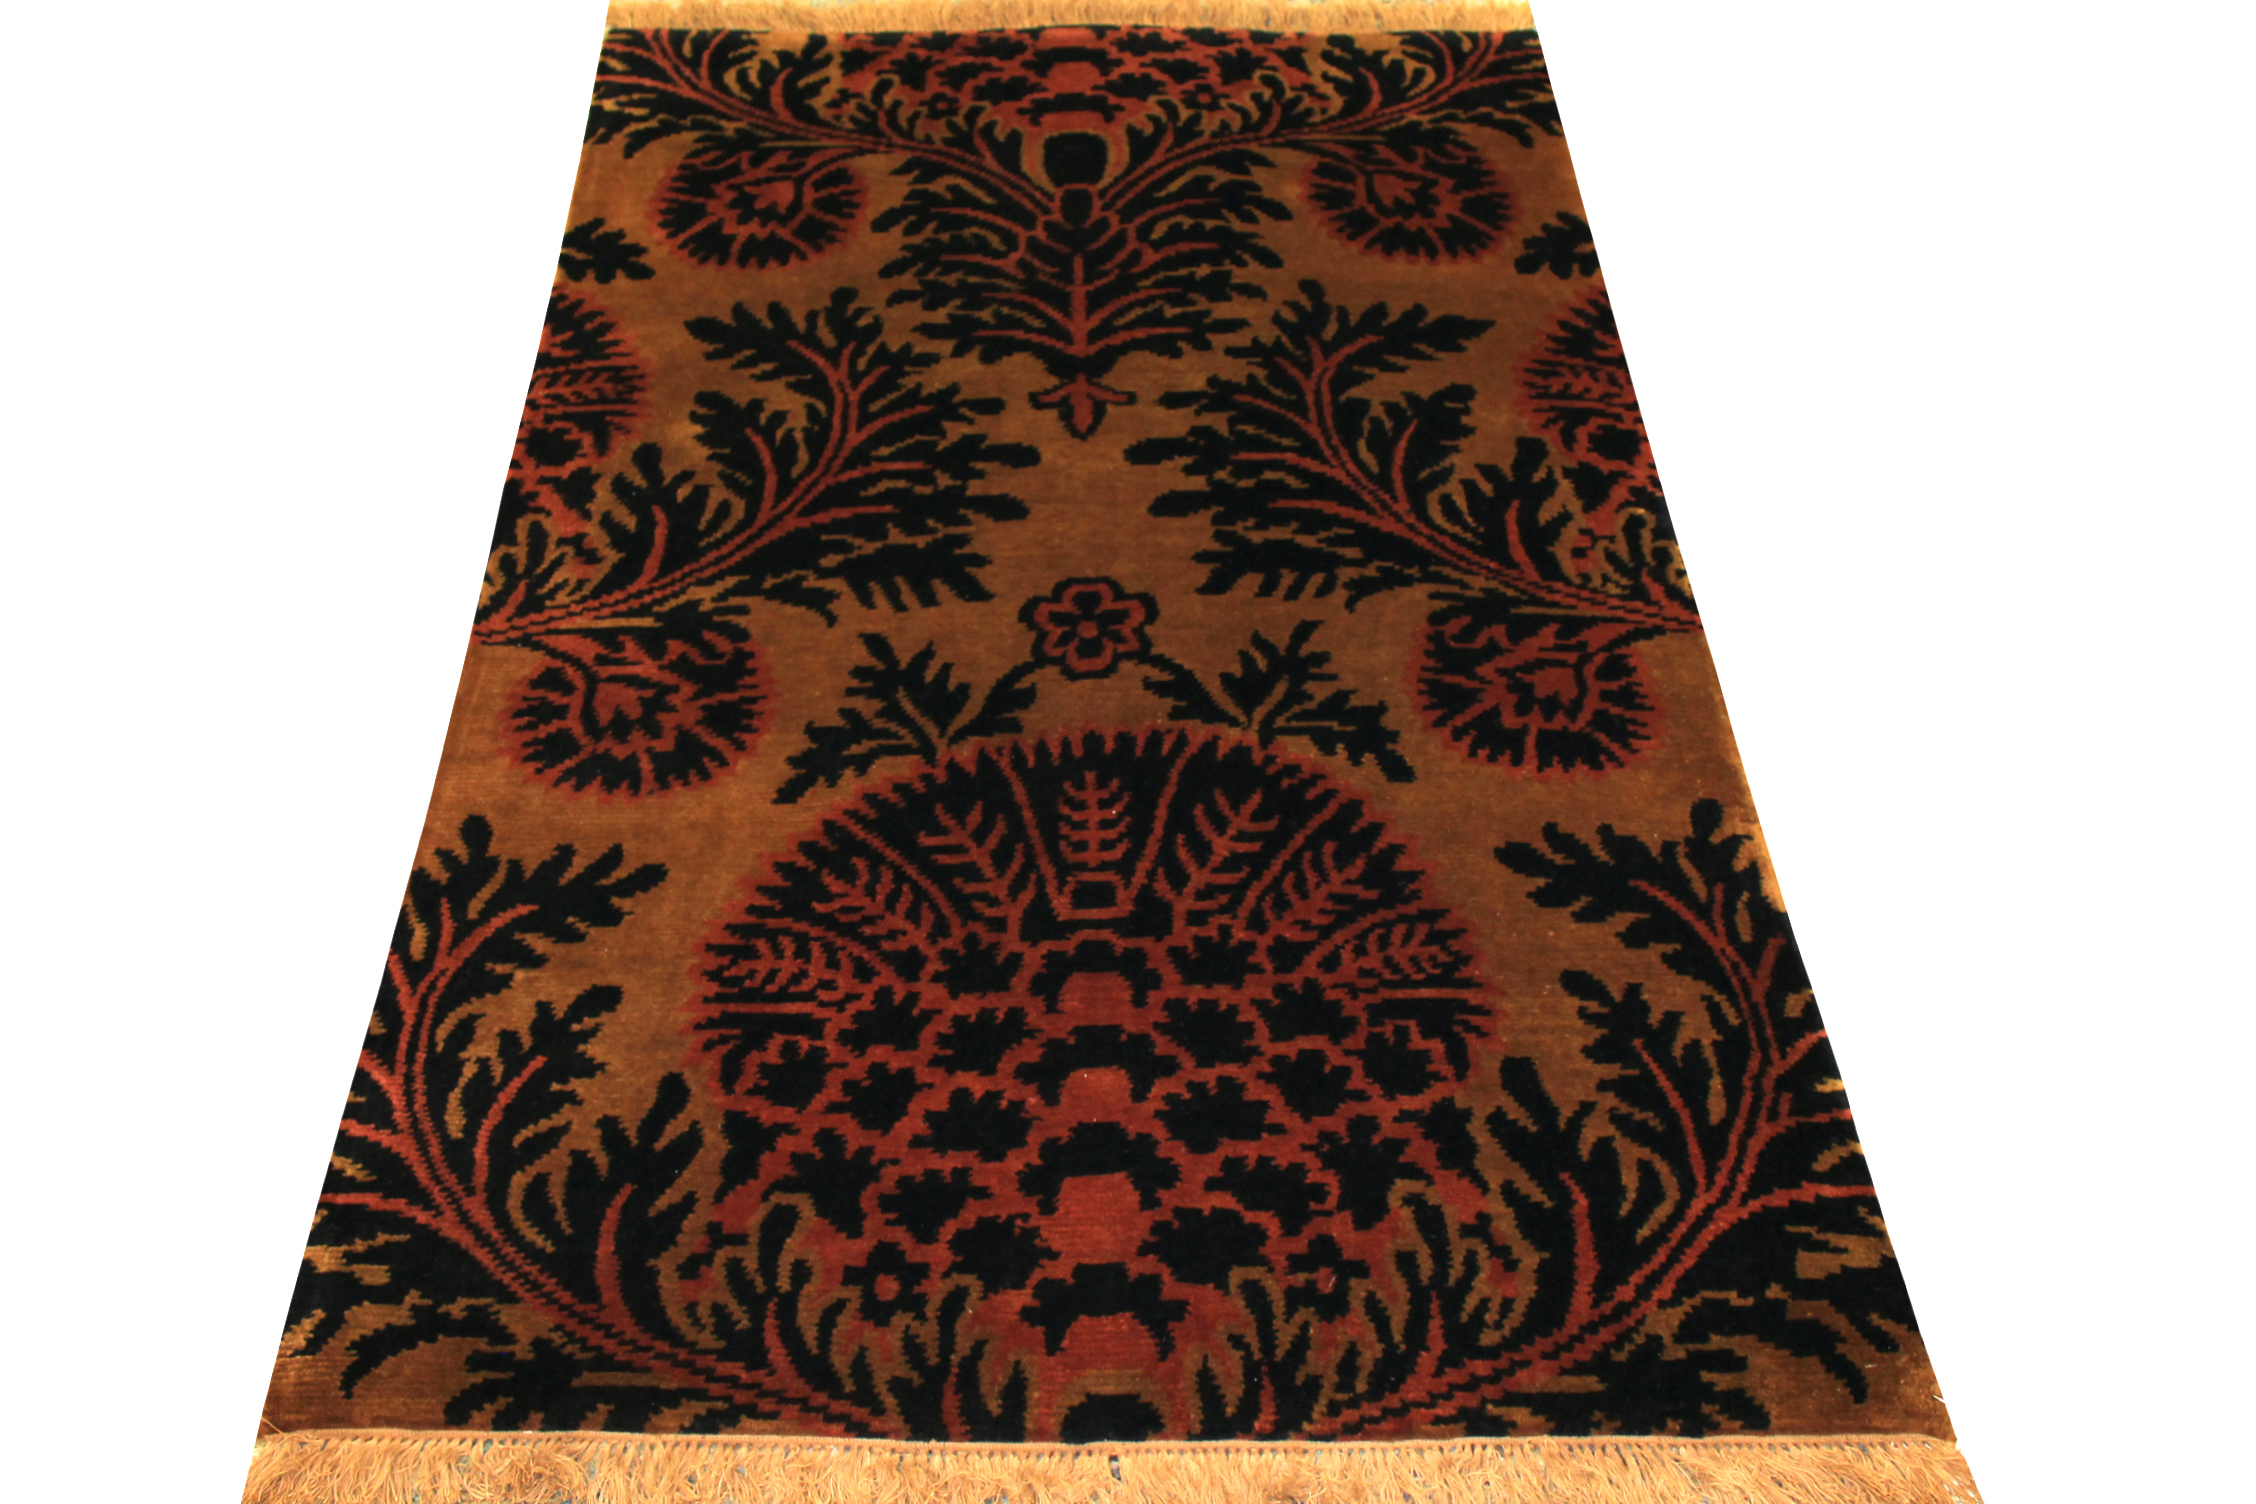 4x6 Contemporary Hand Knotted Wool Area Rug - MR0288